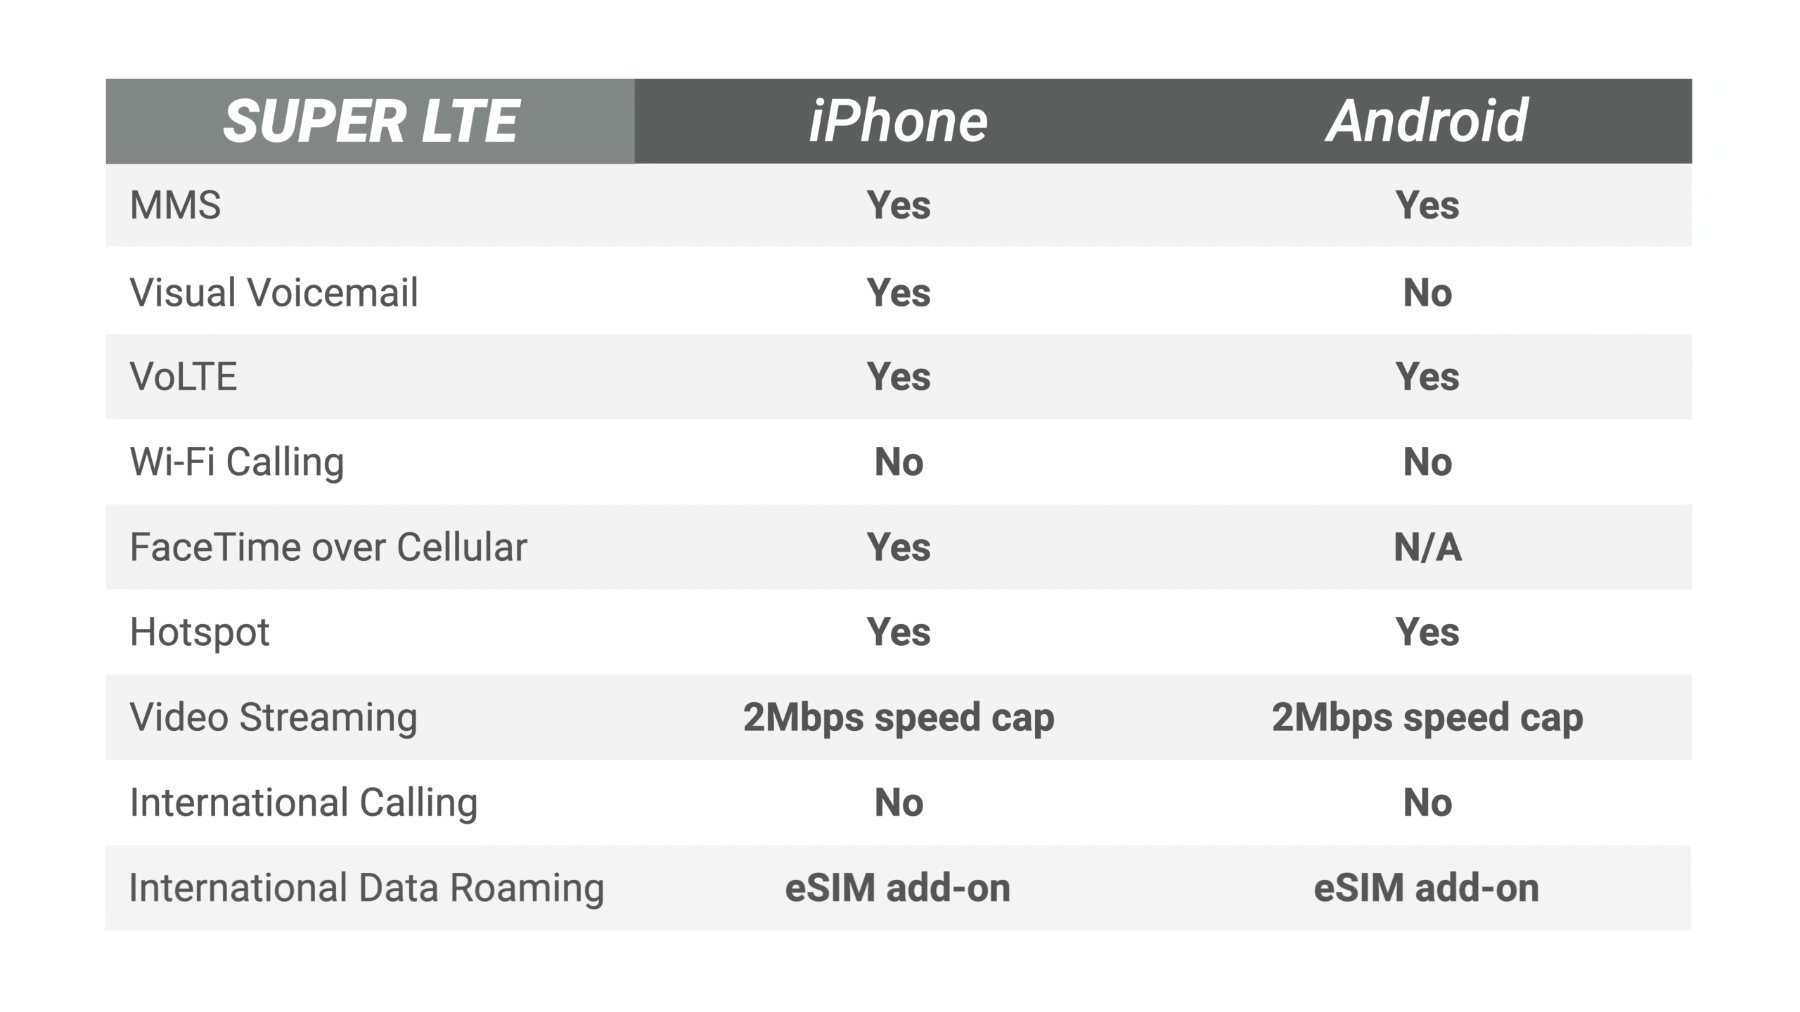 US Mobile Super LTE features on iPhone and Android